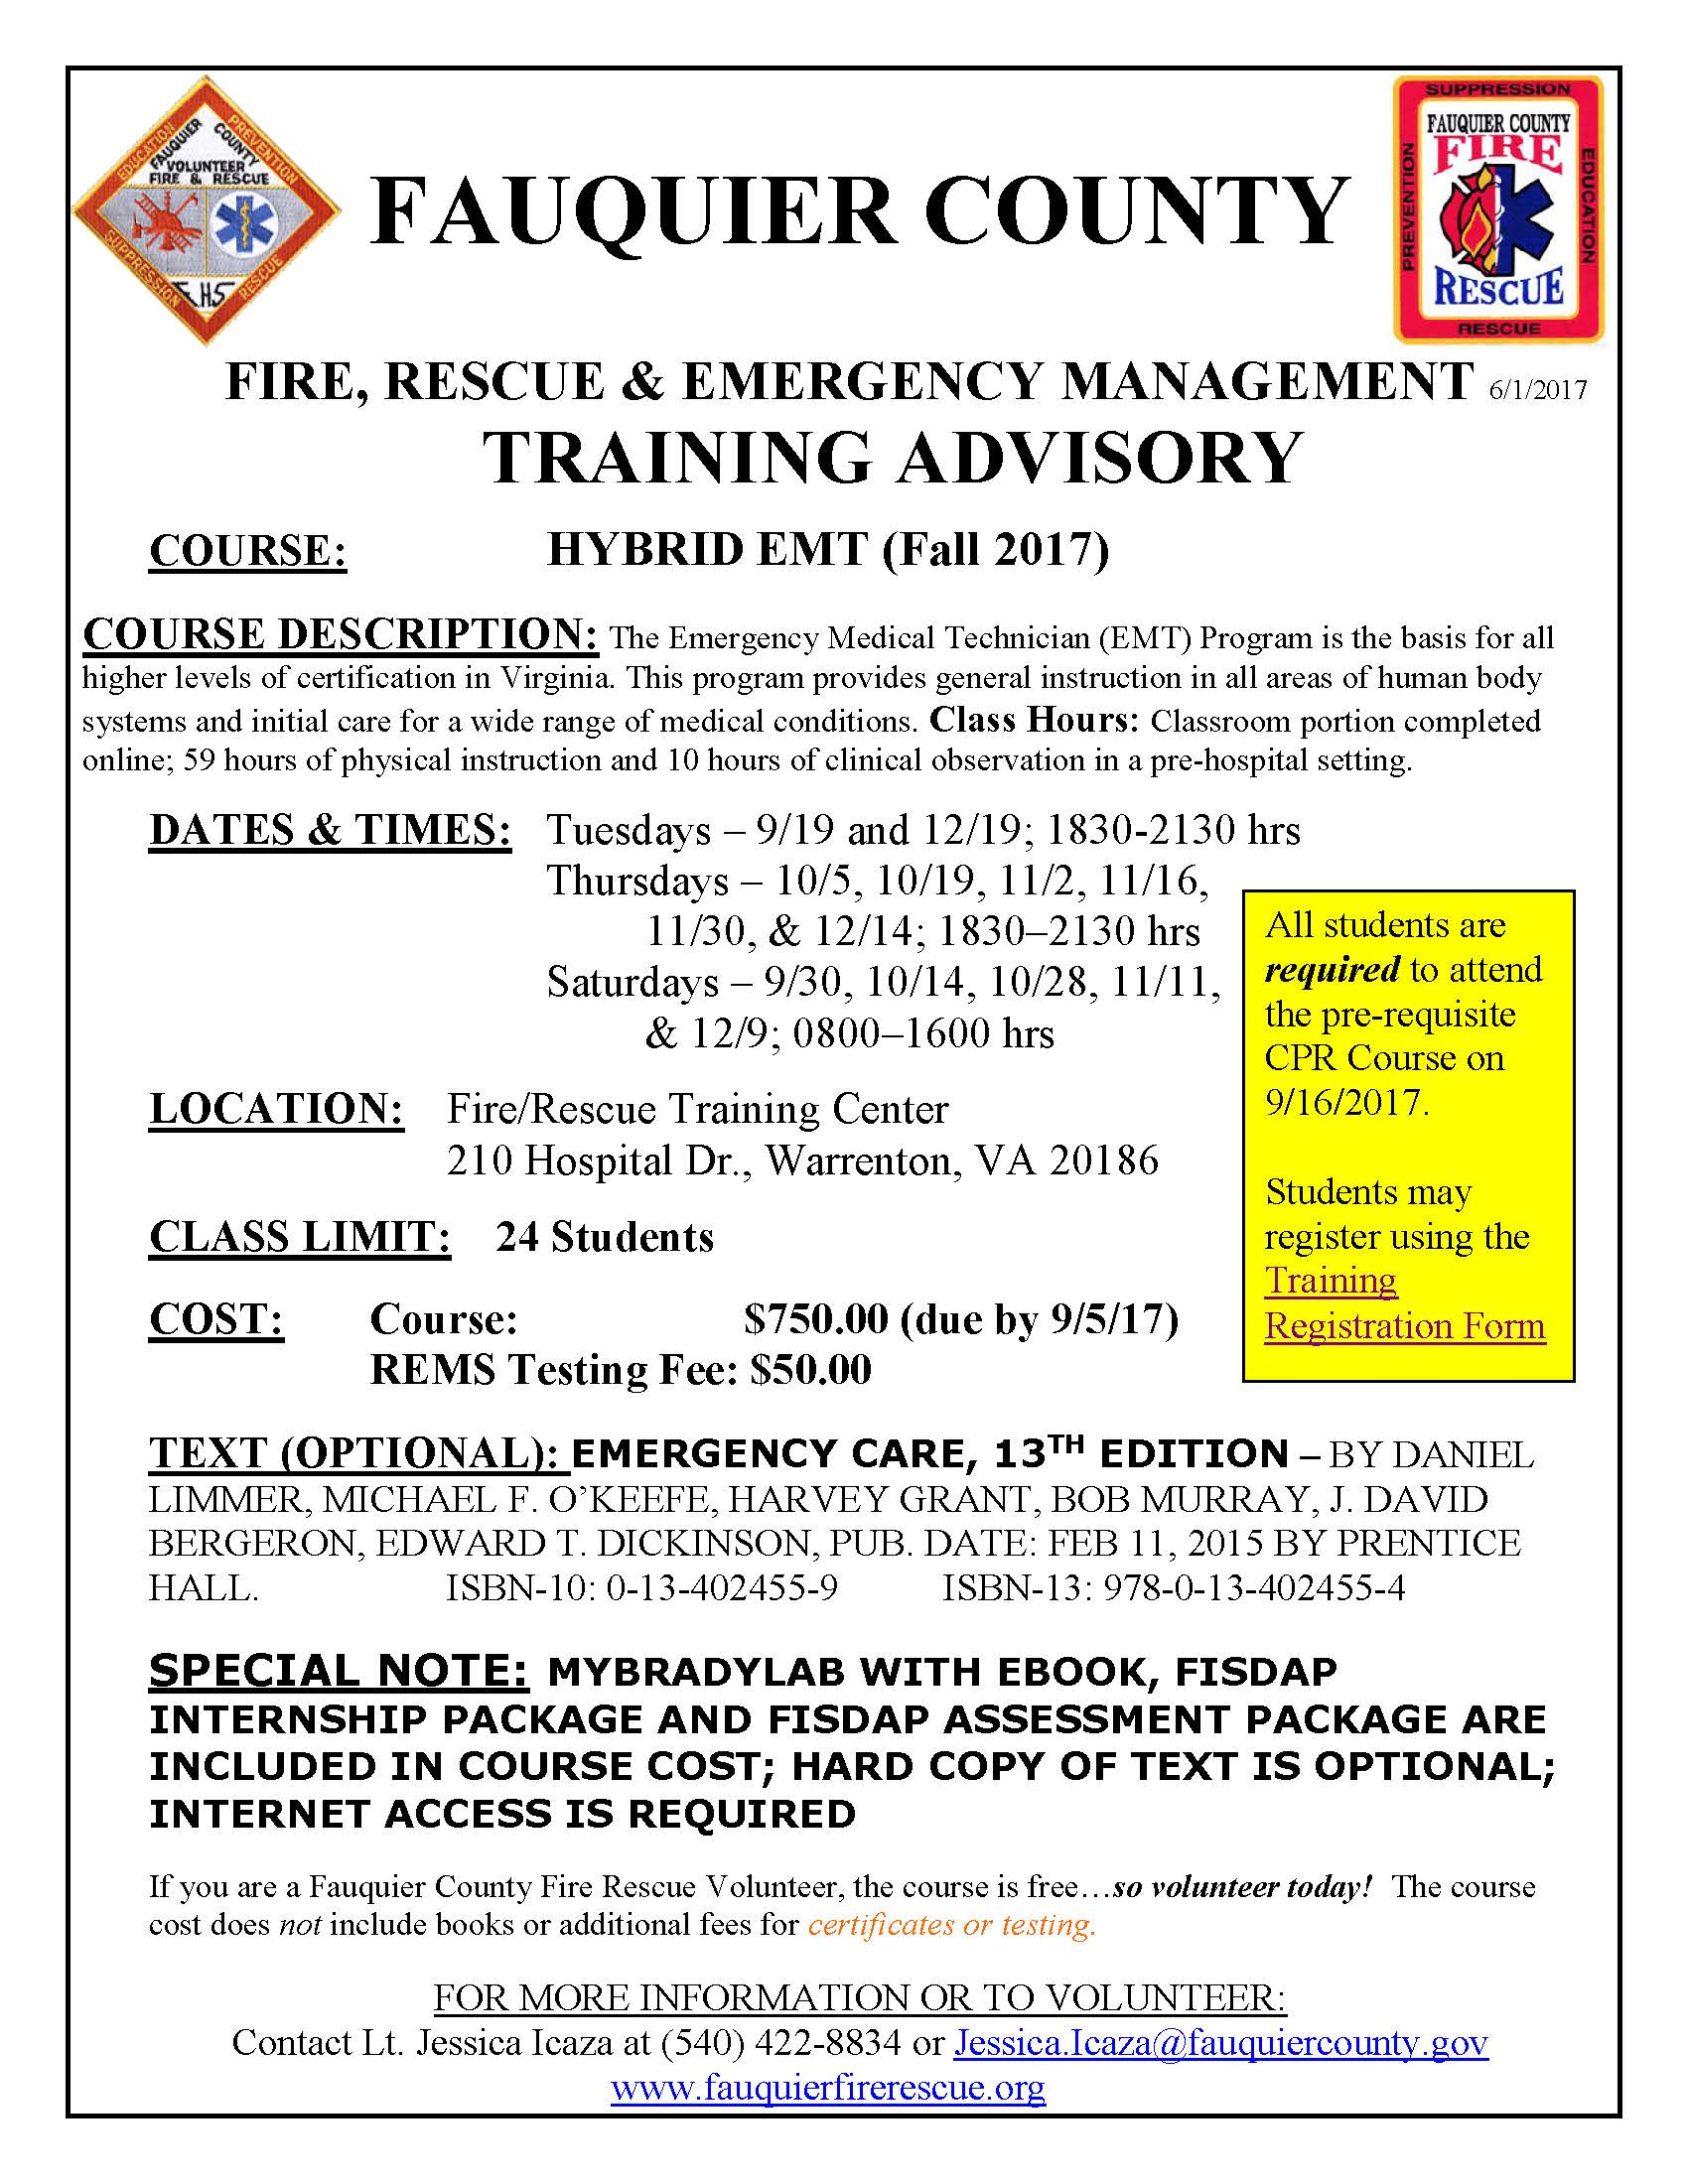 Fauquier county fire rescue fauquier ems training schedule fire rescue training center xflitez Choice Image